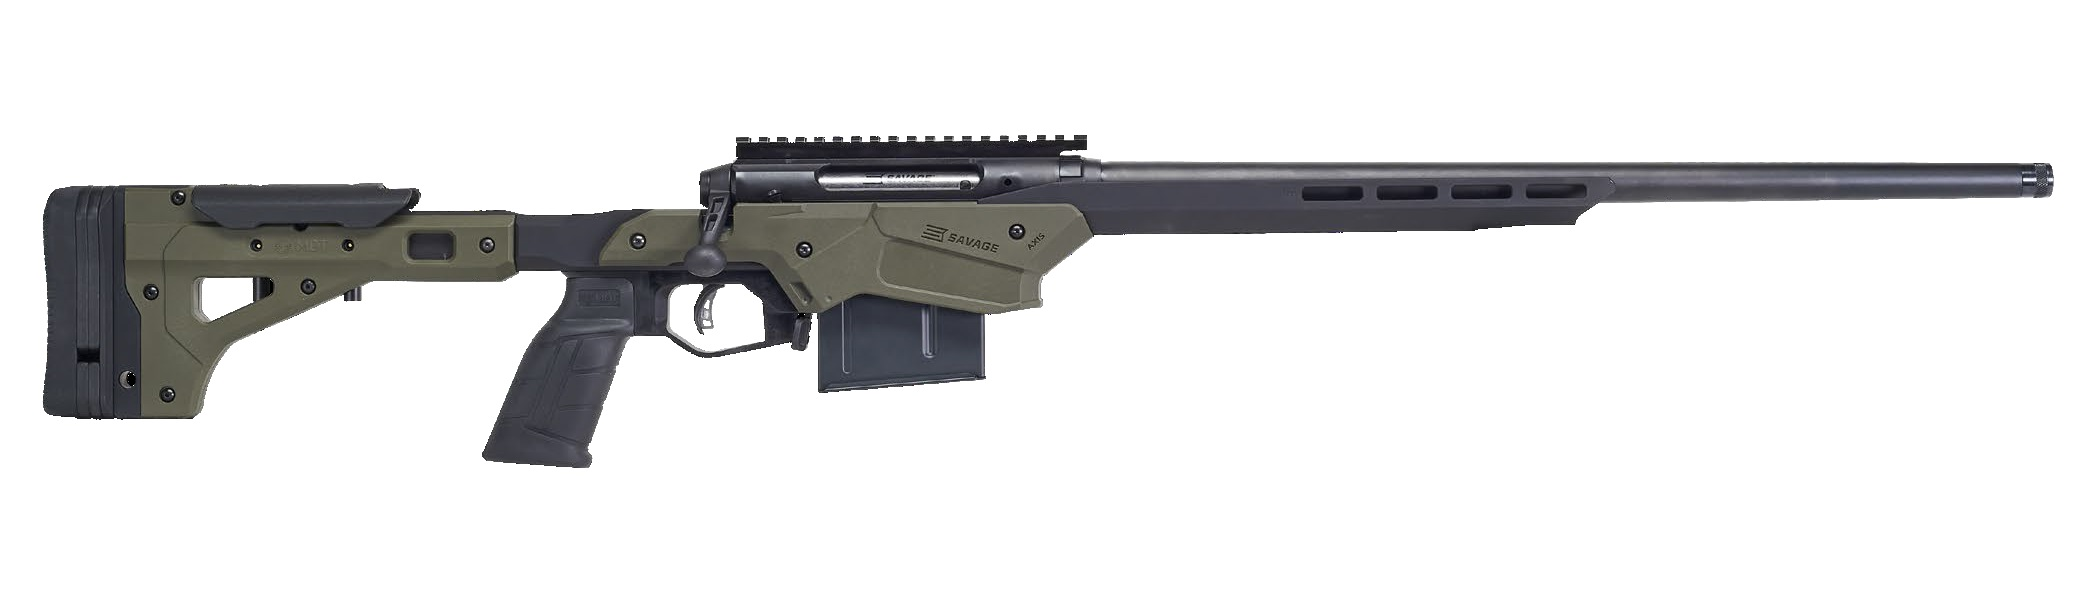 Savage Arms Axis II Precision 308 Win